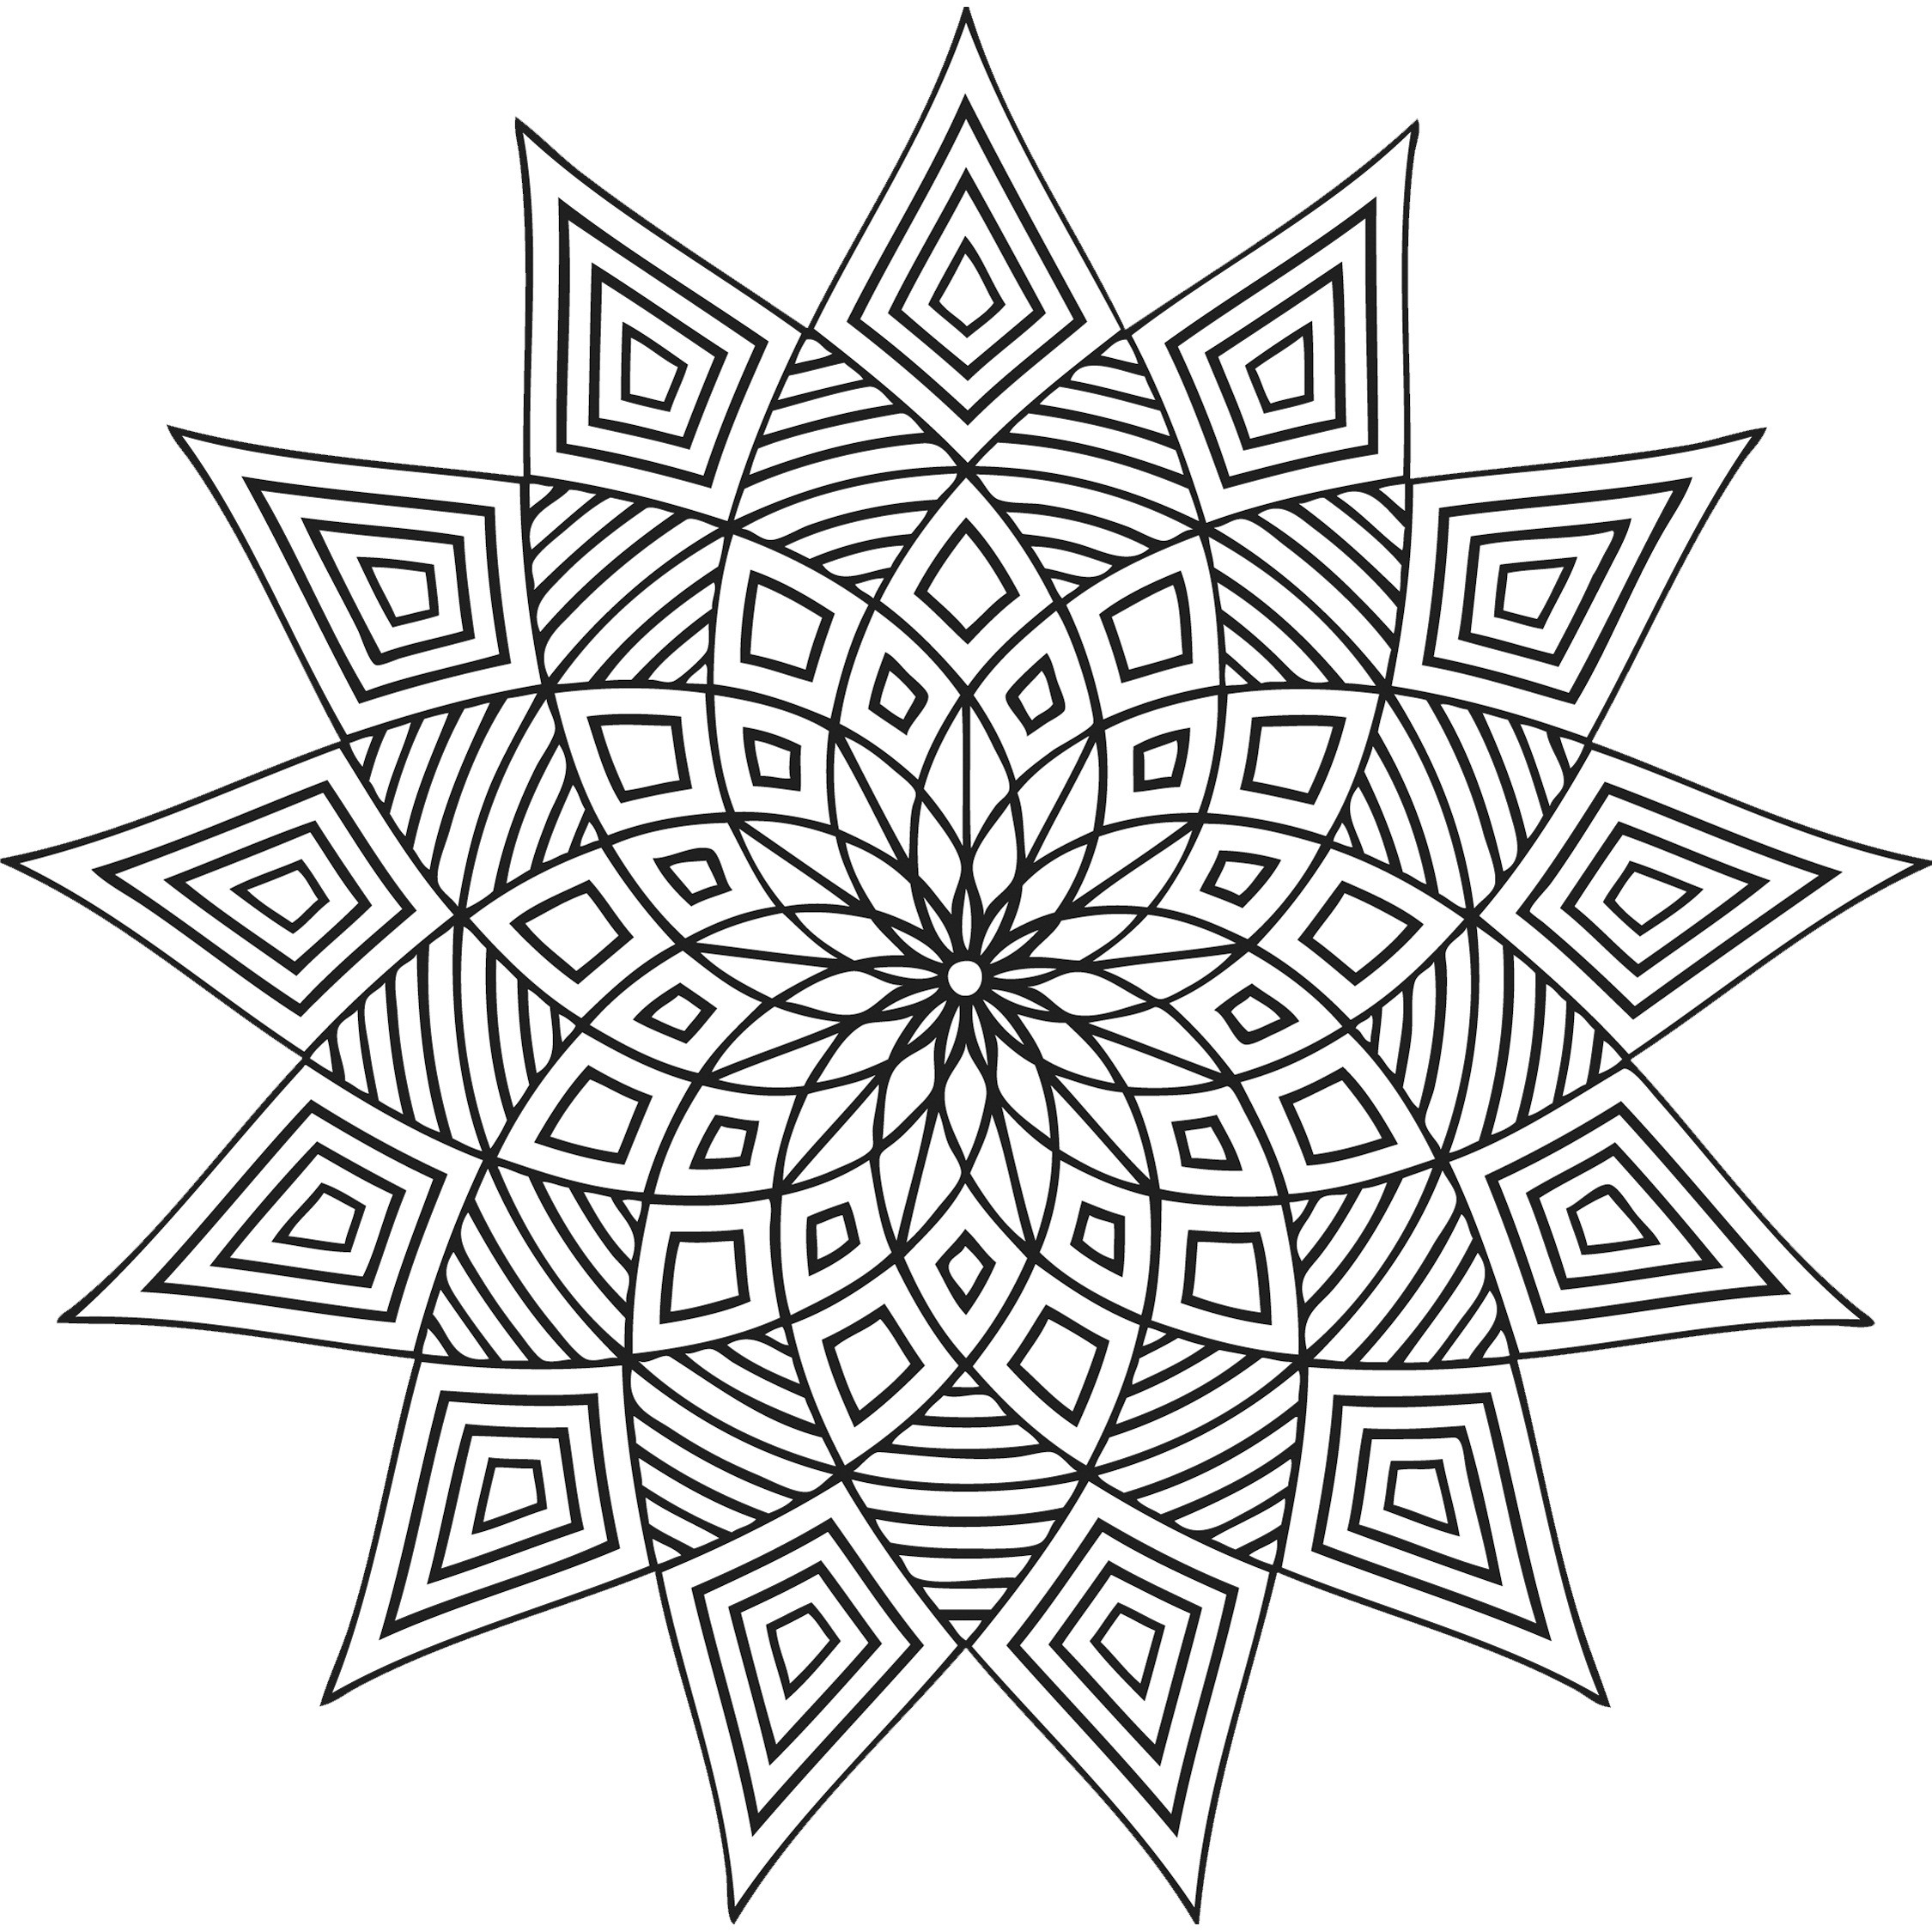 Coloring Patterns For Kids  Free Printable Geometric Coloring Pages For Kids